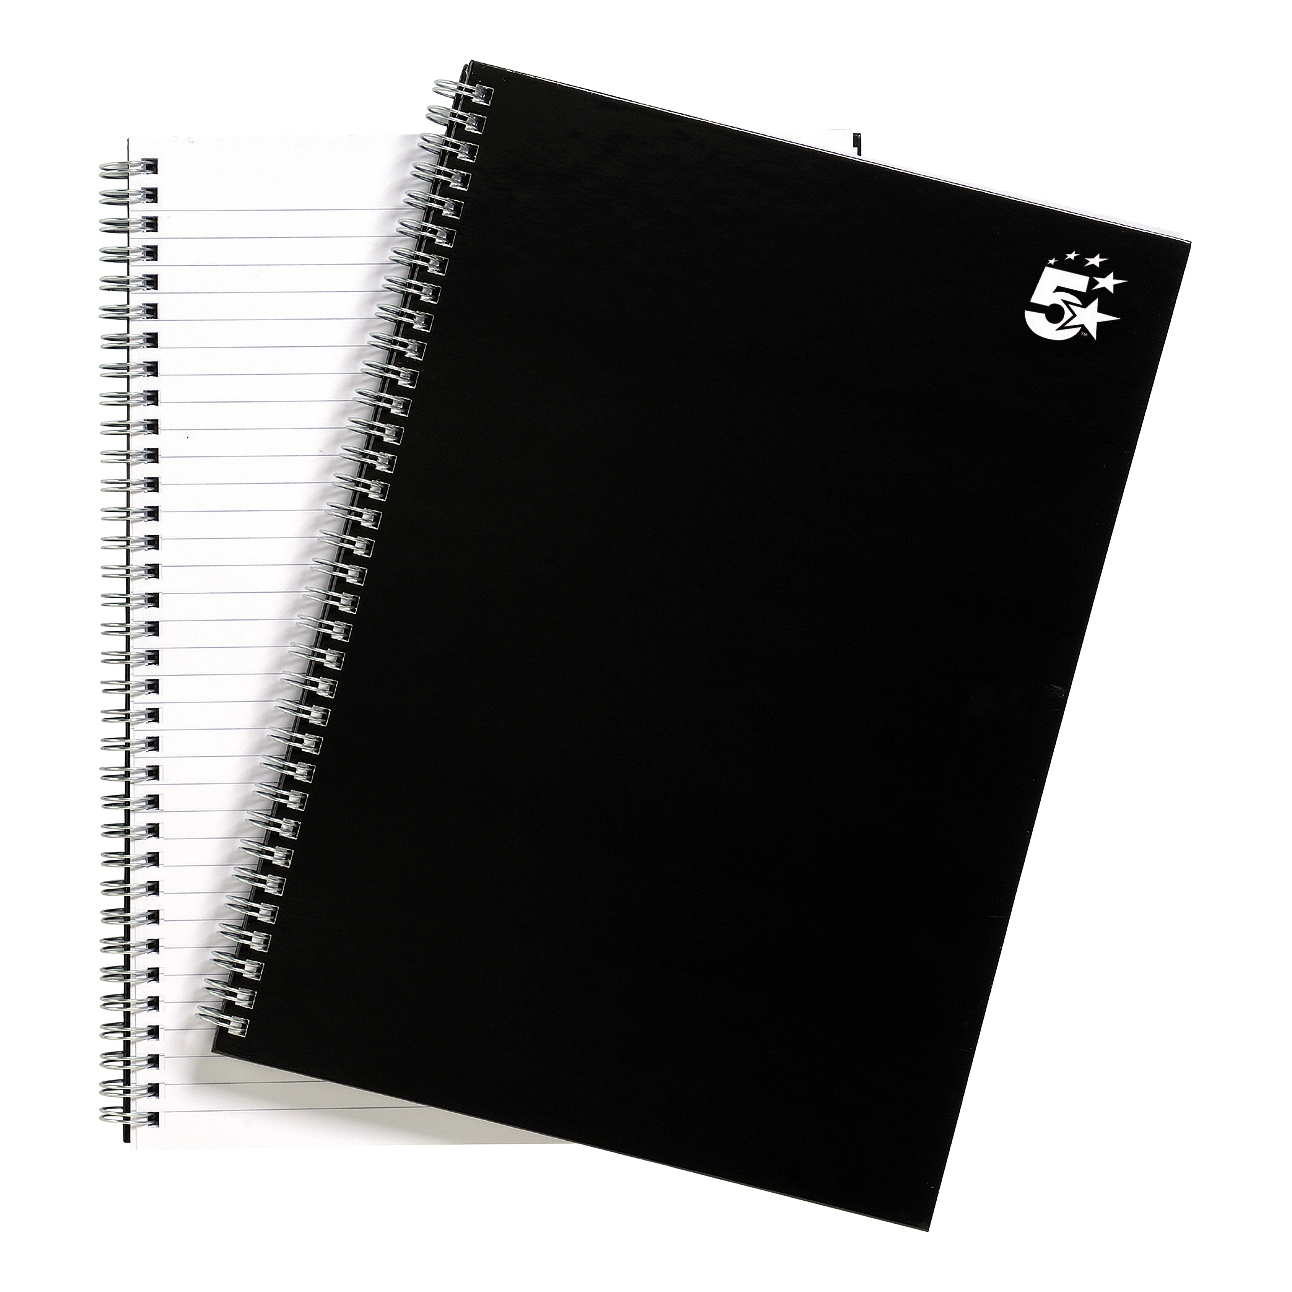 Spiral Note Books 5 Star Office Notebook Wirebound 80gsm Ruled 140pp A4 Black Pack 5